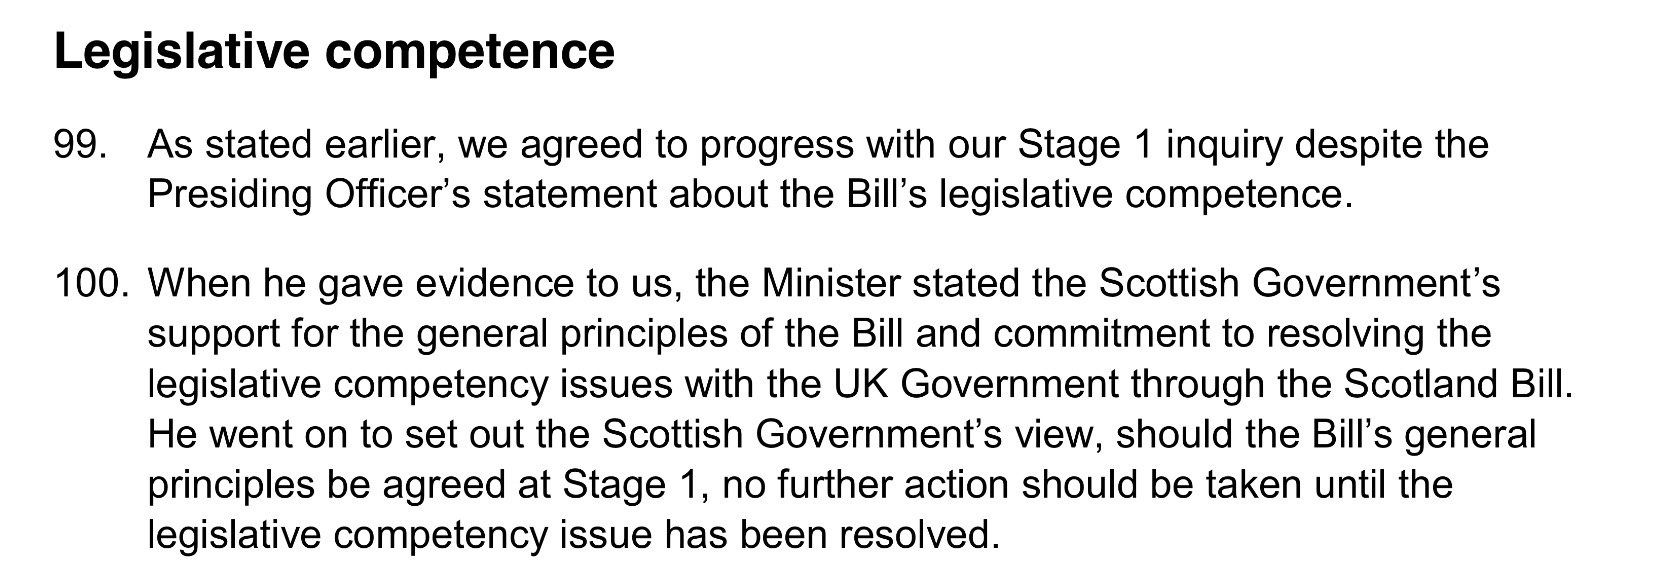 """SNP Minister (Derek Mackay) confirming to the Local Government and Regeneration committee that no further action should be taken on the bill """"until legislative competence"""" issues are resolved (SP Paper 907, 8th Feb 2016)"""